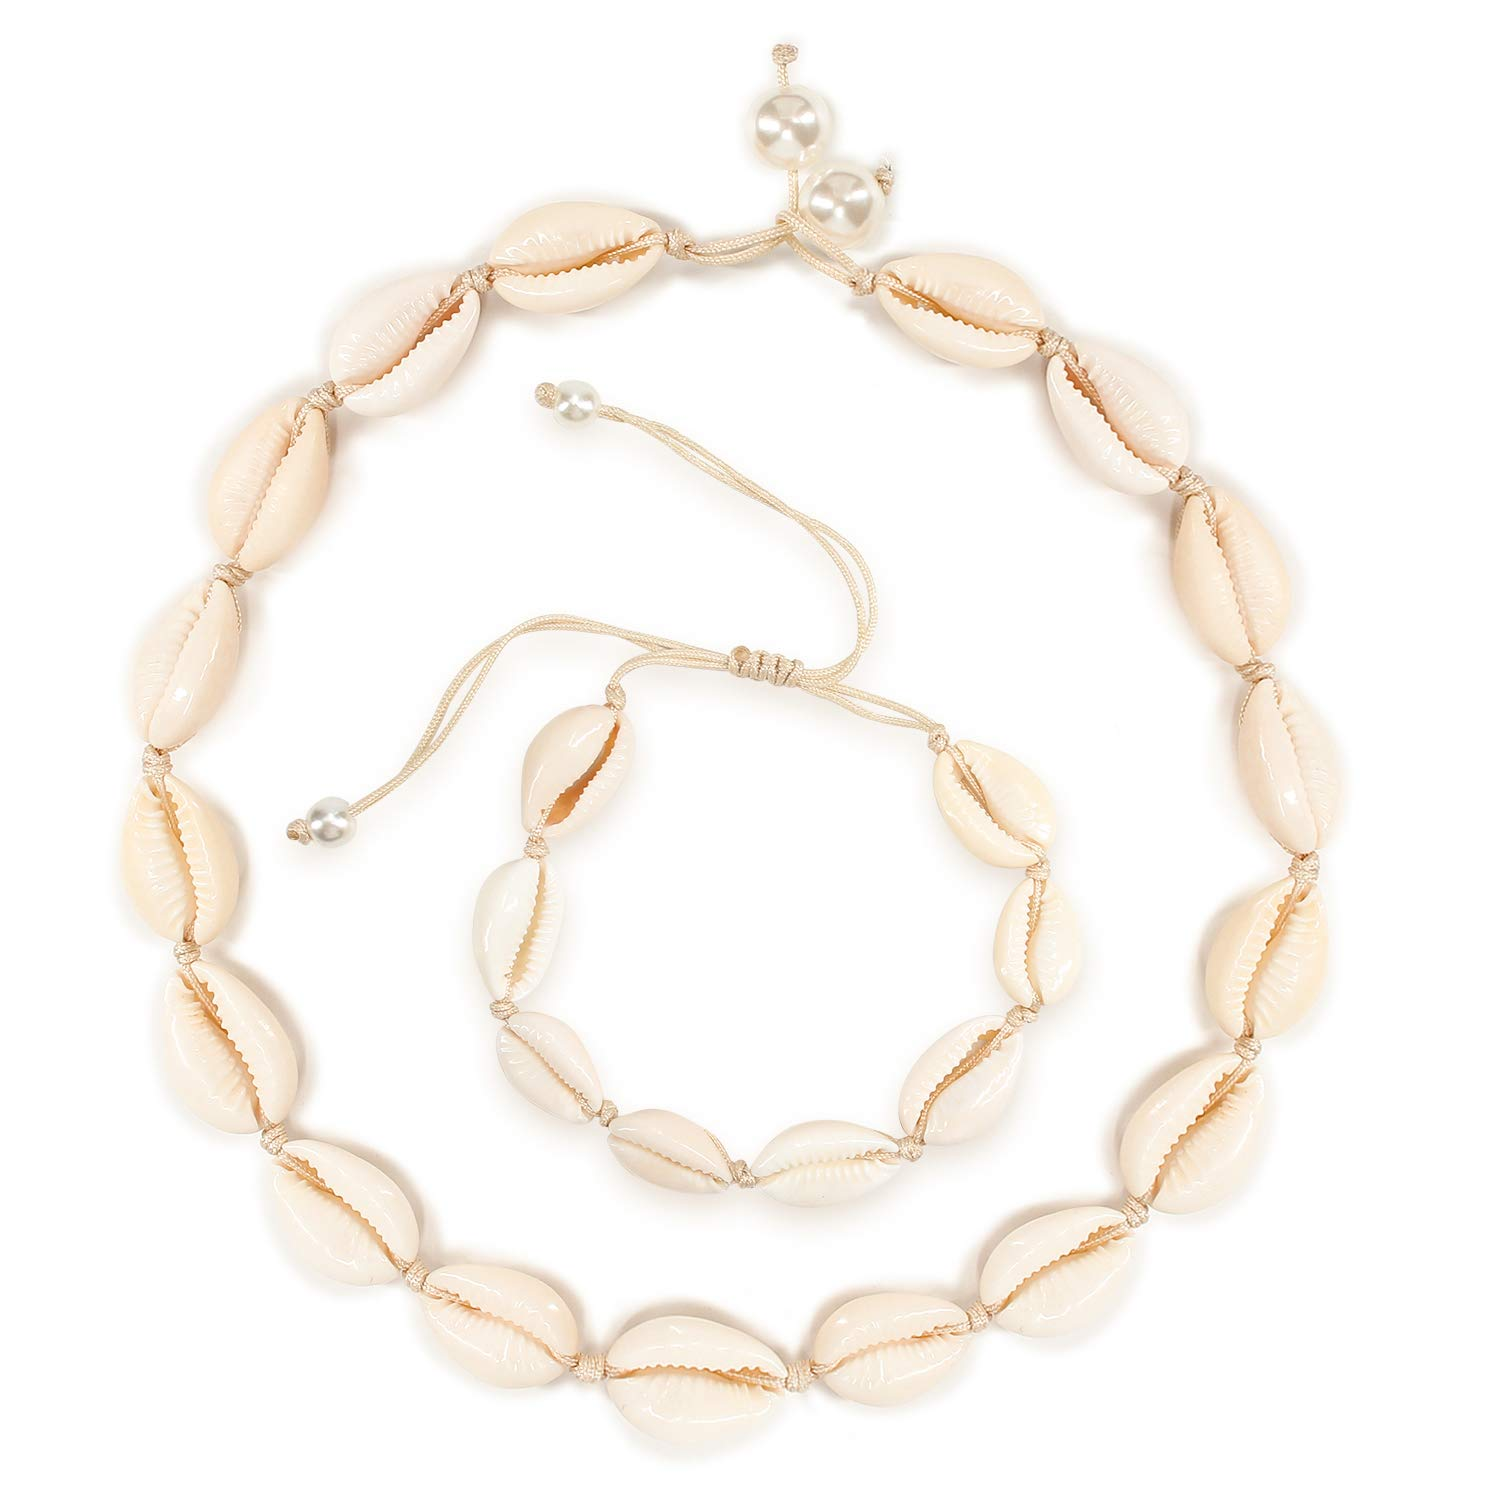 FERTOY Cowrie Shell Choker Necklace for Woman Beach Shell Necklace Bracelet Set Necklace for Summer